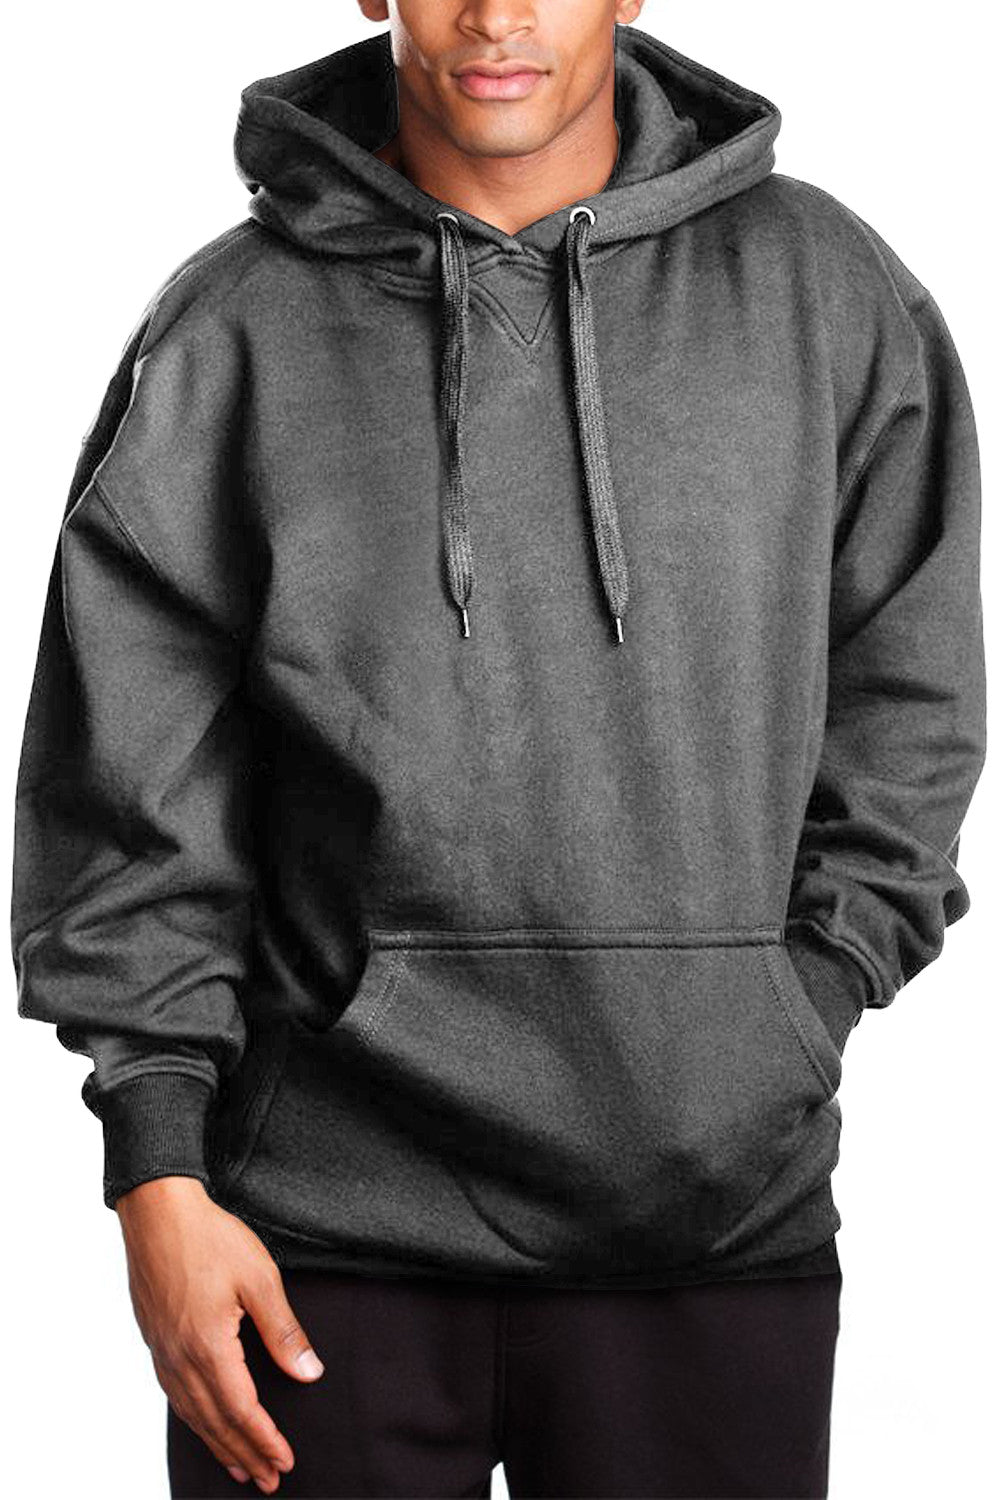 Fleece Pullover Hoodie Sweater - Pro 5 Apparel